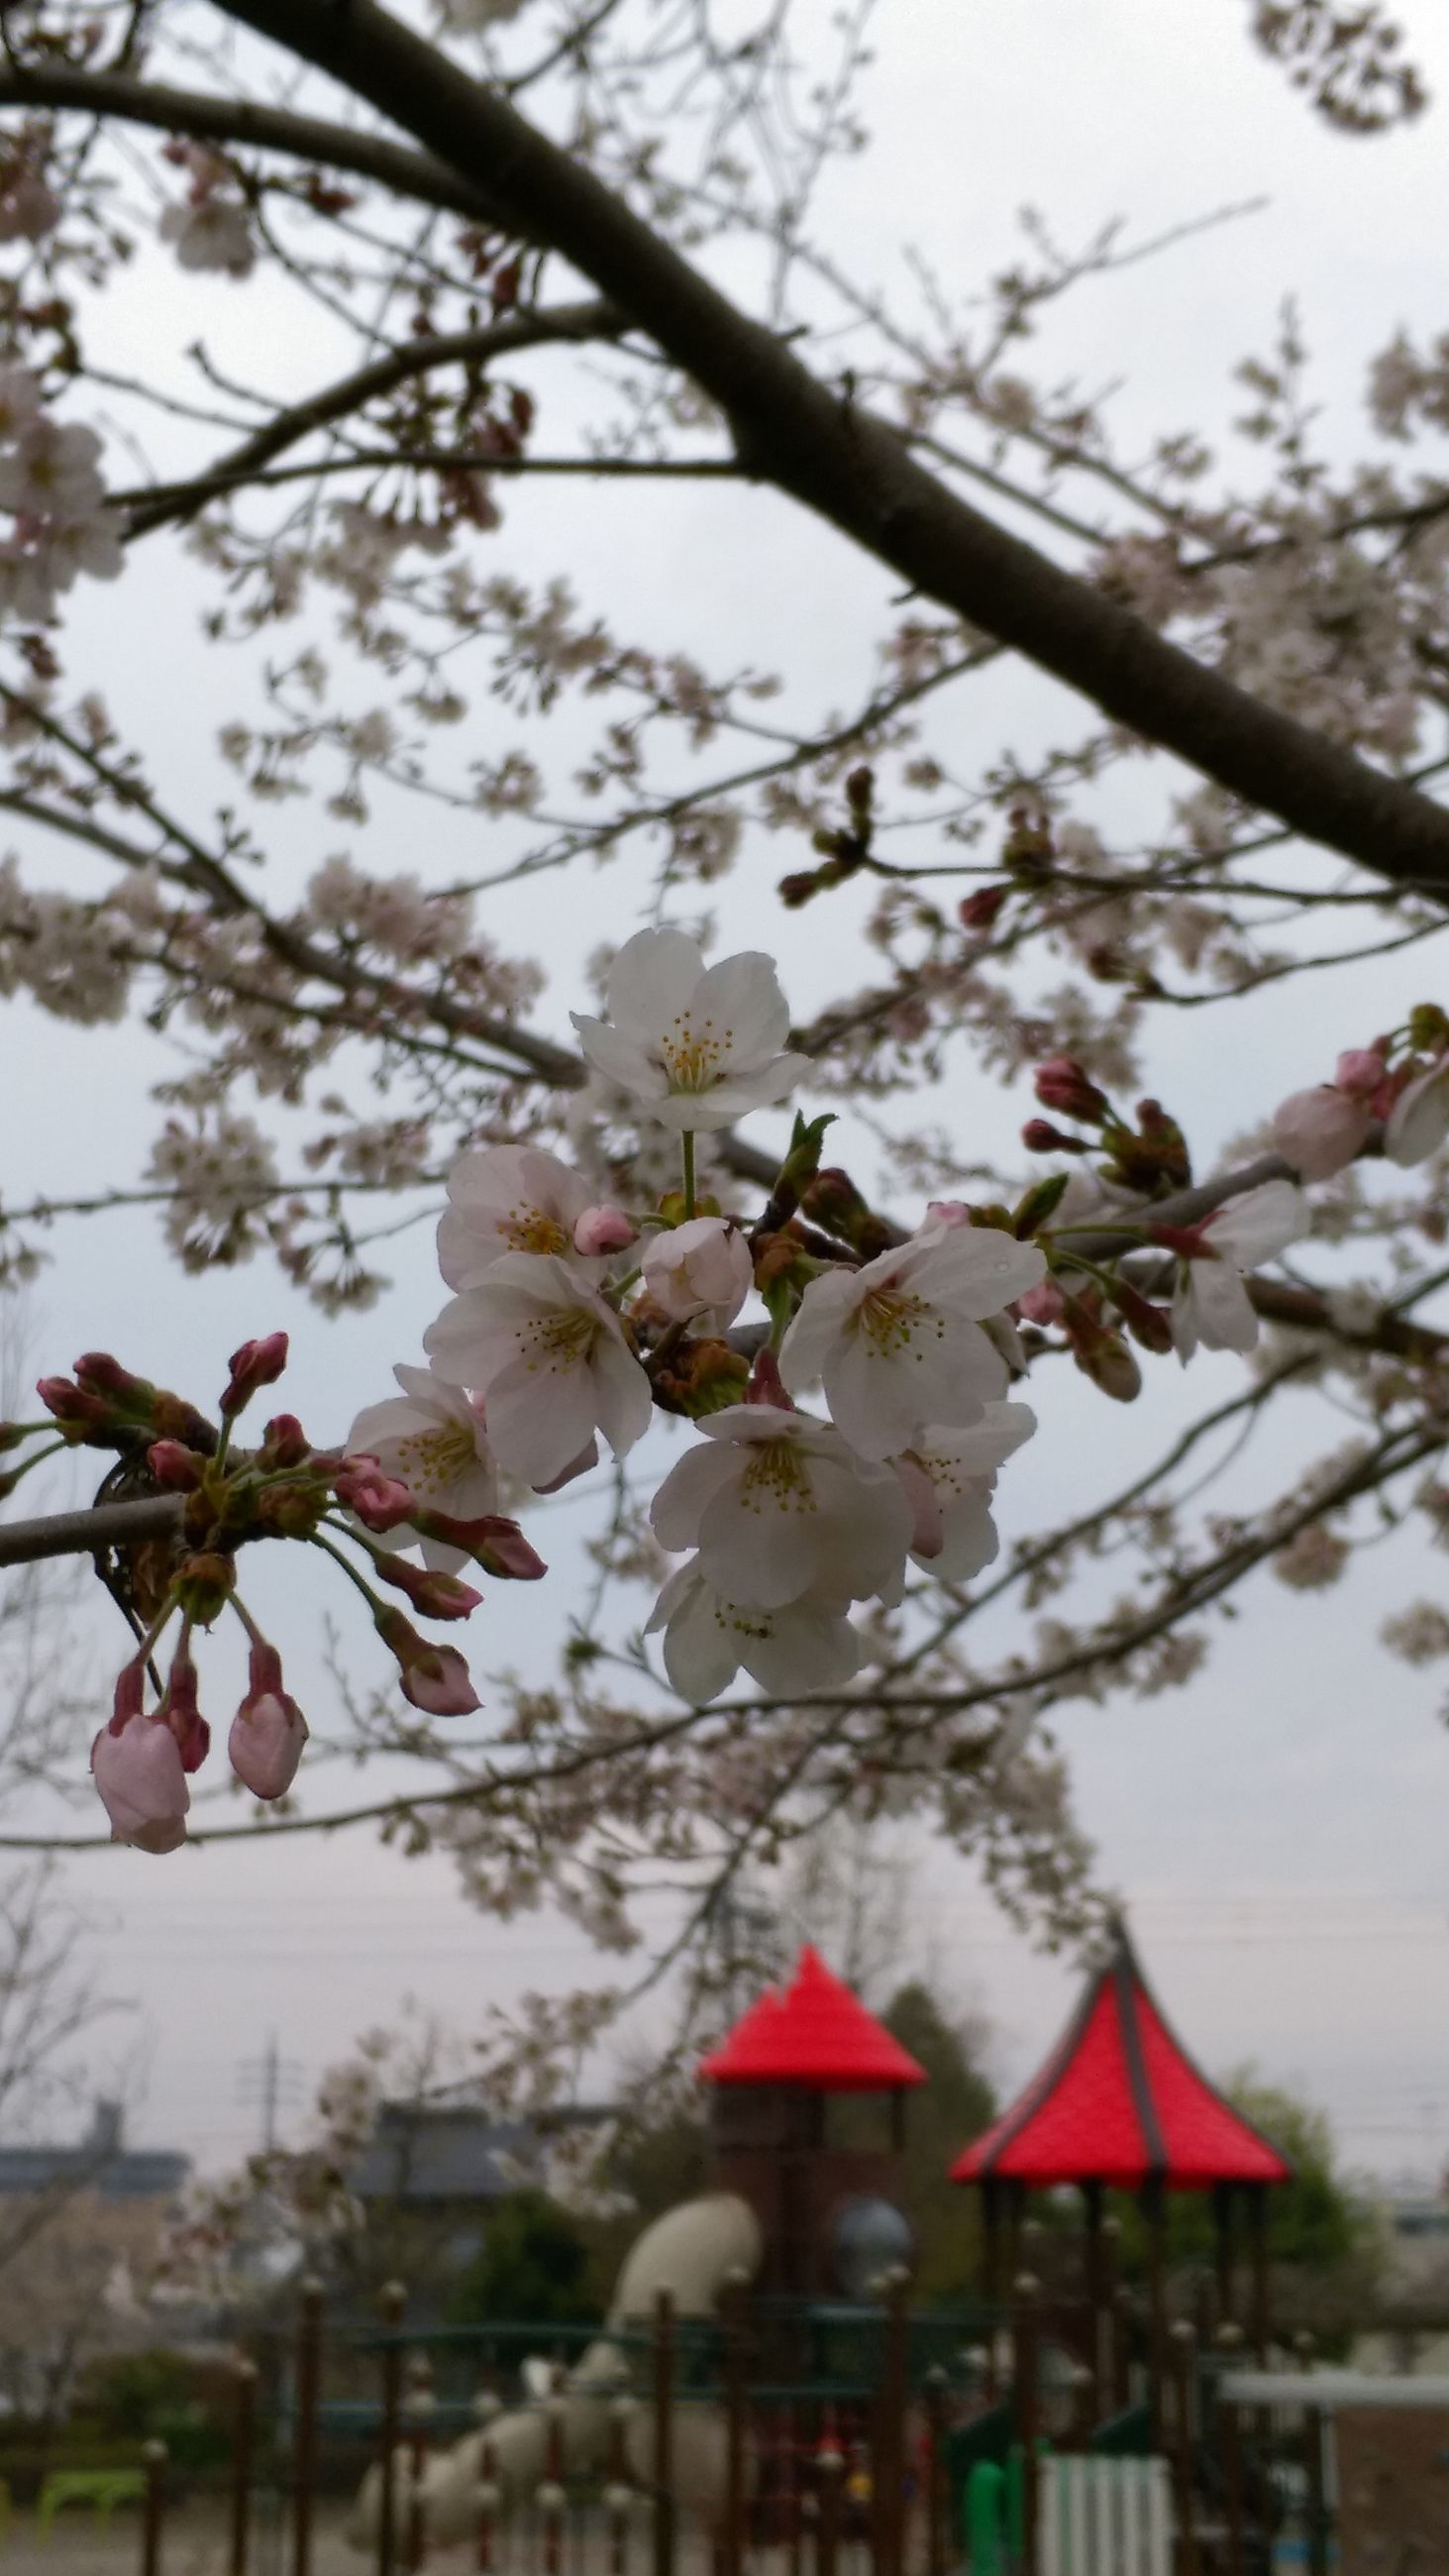 branch, tree, flower, focus on foreground, freshness, cherry tree, low angle view, growth, built structure, cherry blossom, blossom, building exterior, fragility, twig, nature, architecture, close-up, season, day, apple tree